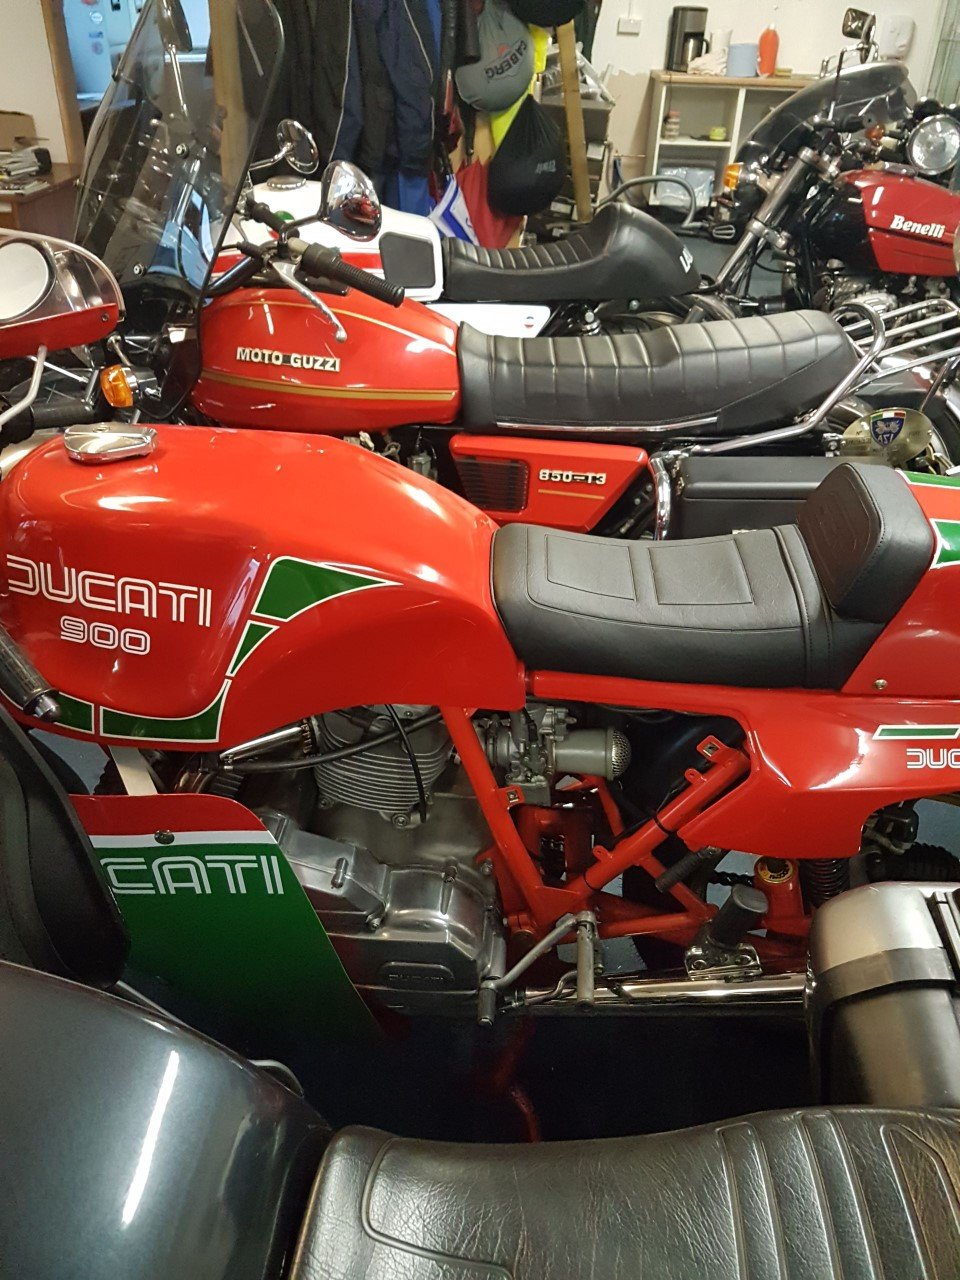 1983 Ducati 900 MHR For Sale (picture 6 of 6)